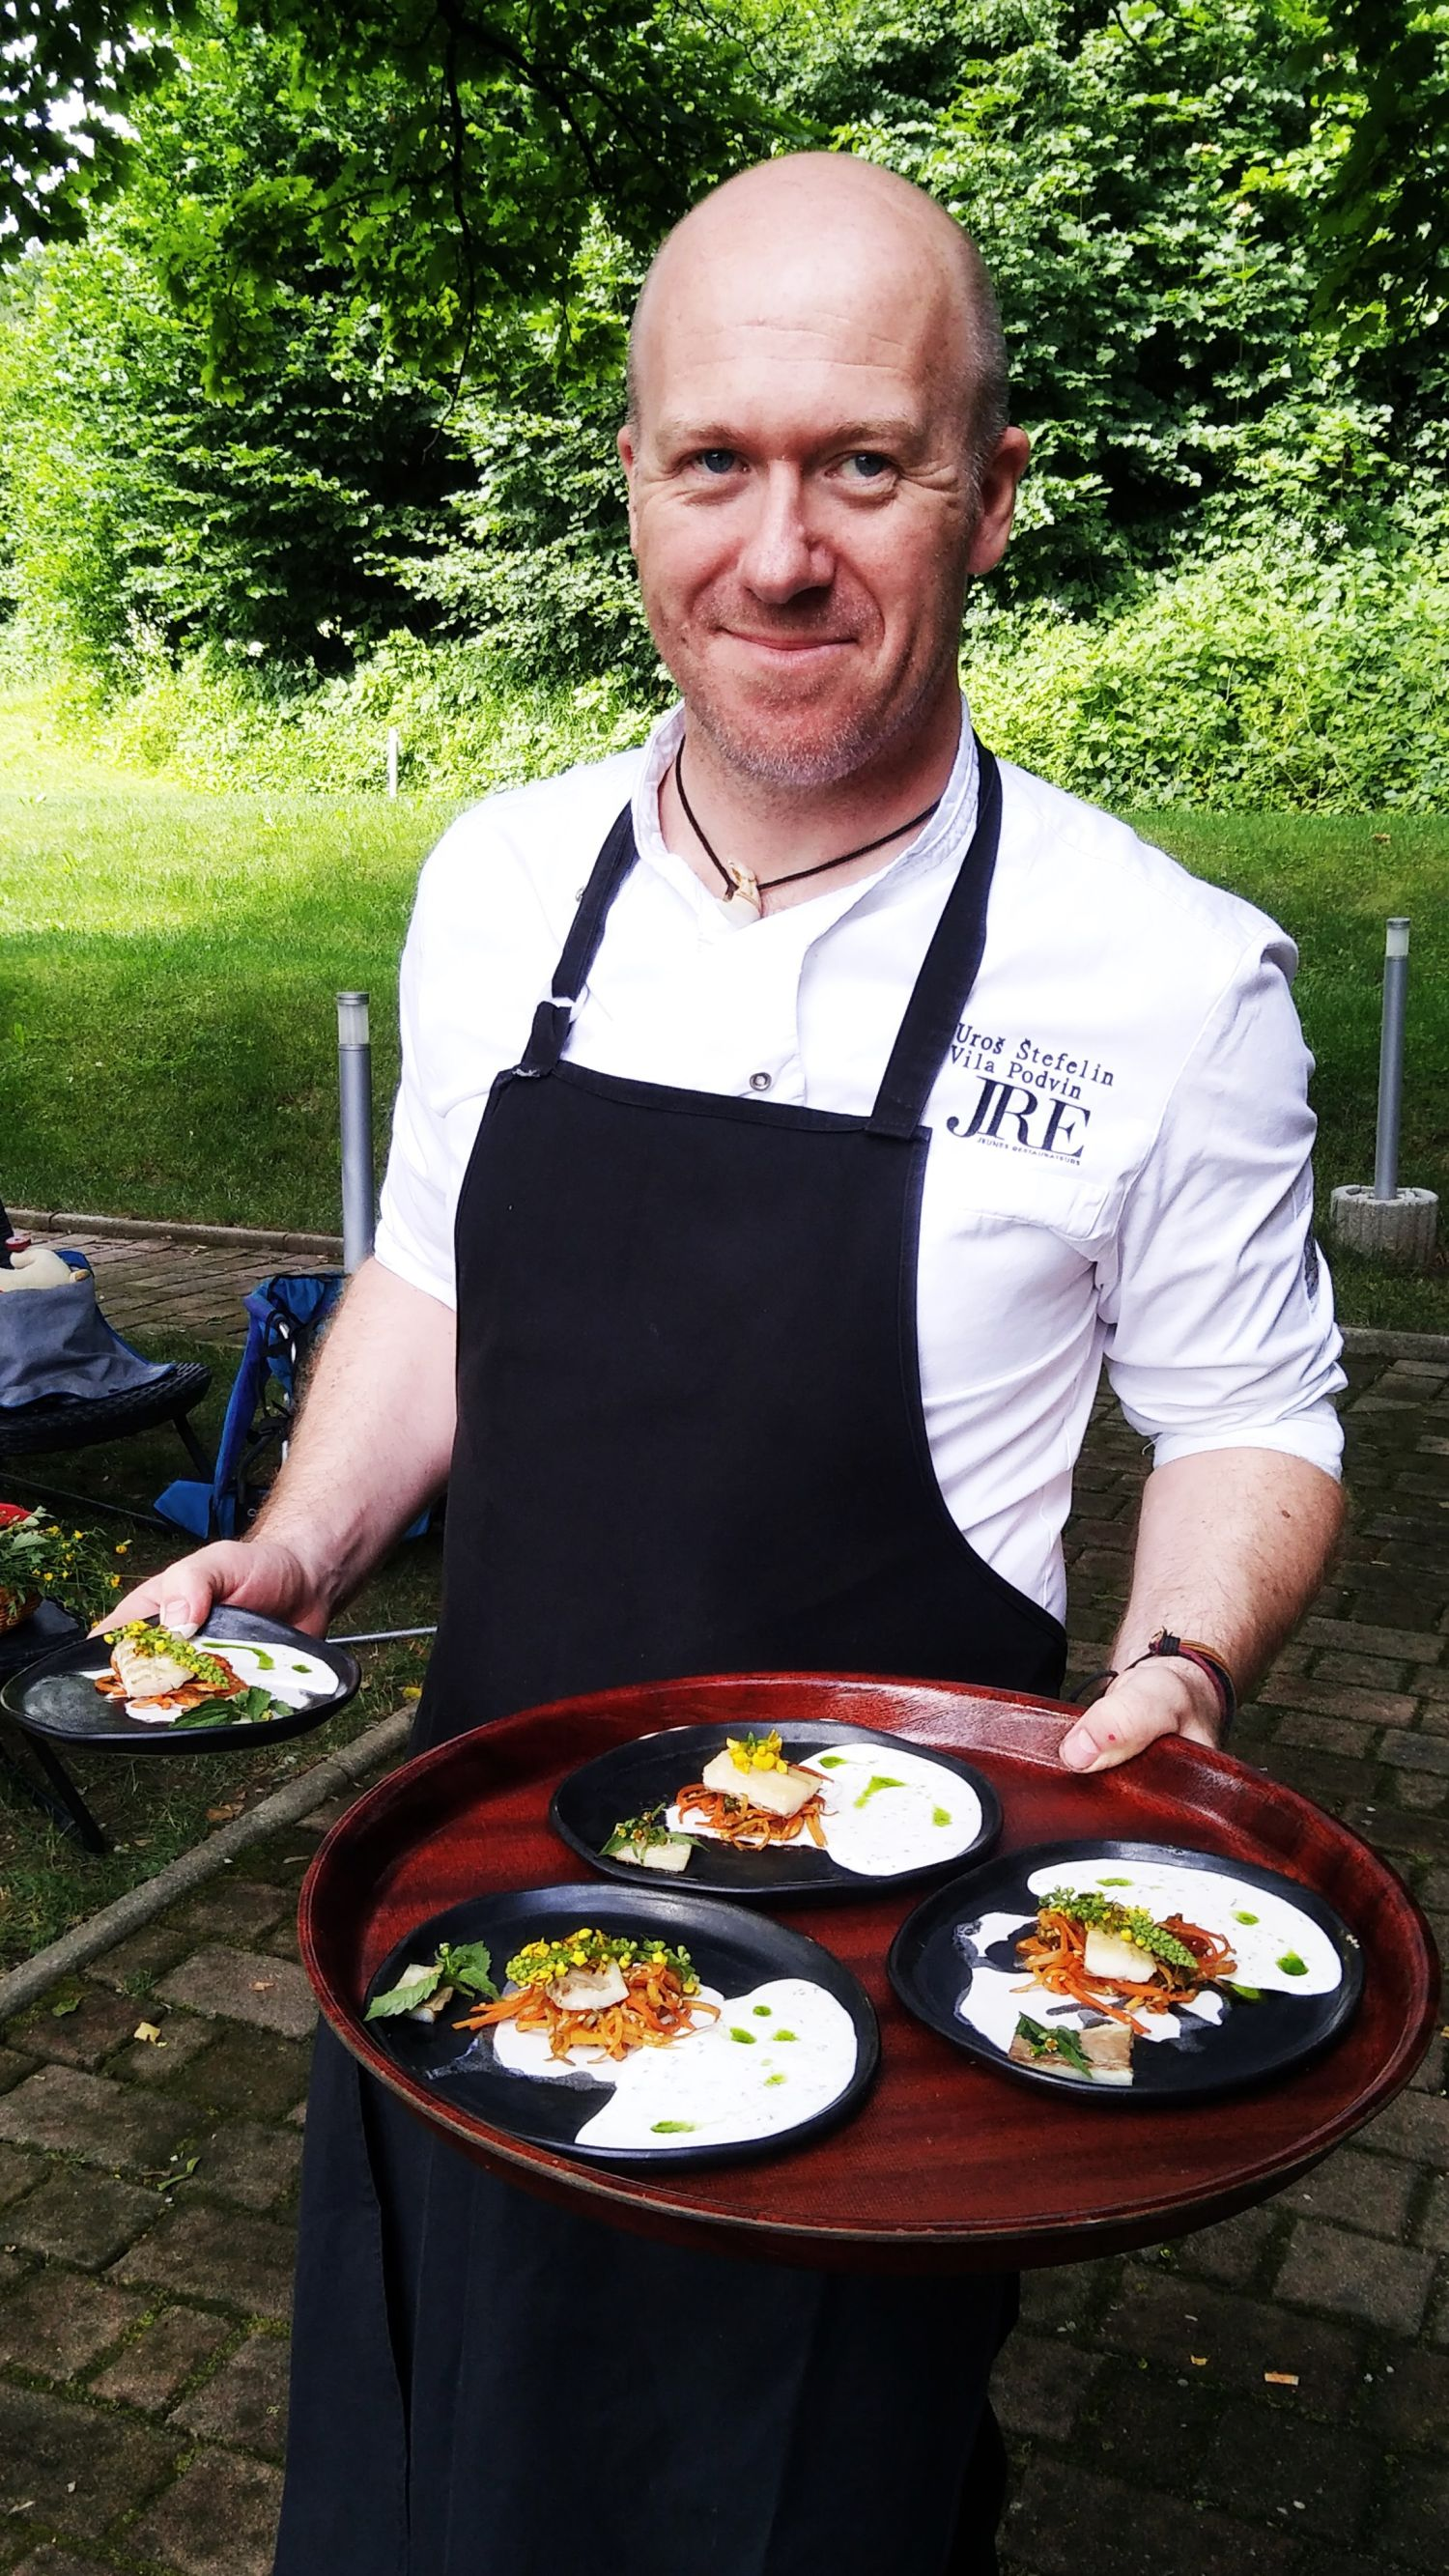 Chef Uroš Štefelin of Vila Podvina restaurant with four plates of smoked sea bass Fonda fillet, accompanied by yogurt sauce with dill oil and cabbage thistle, and marinated vegetables